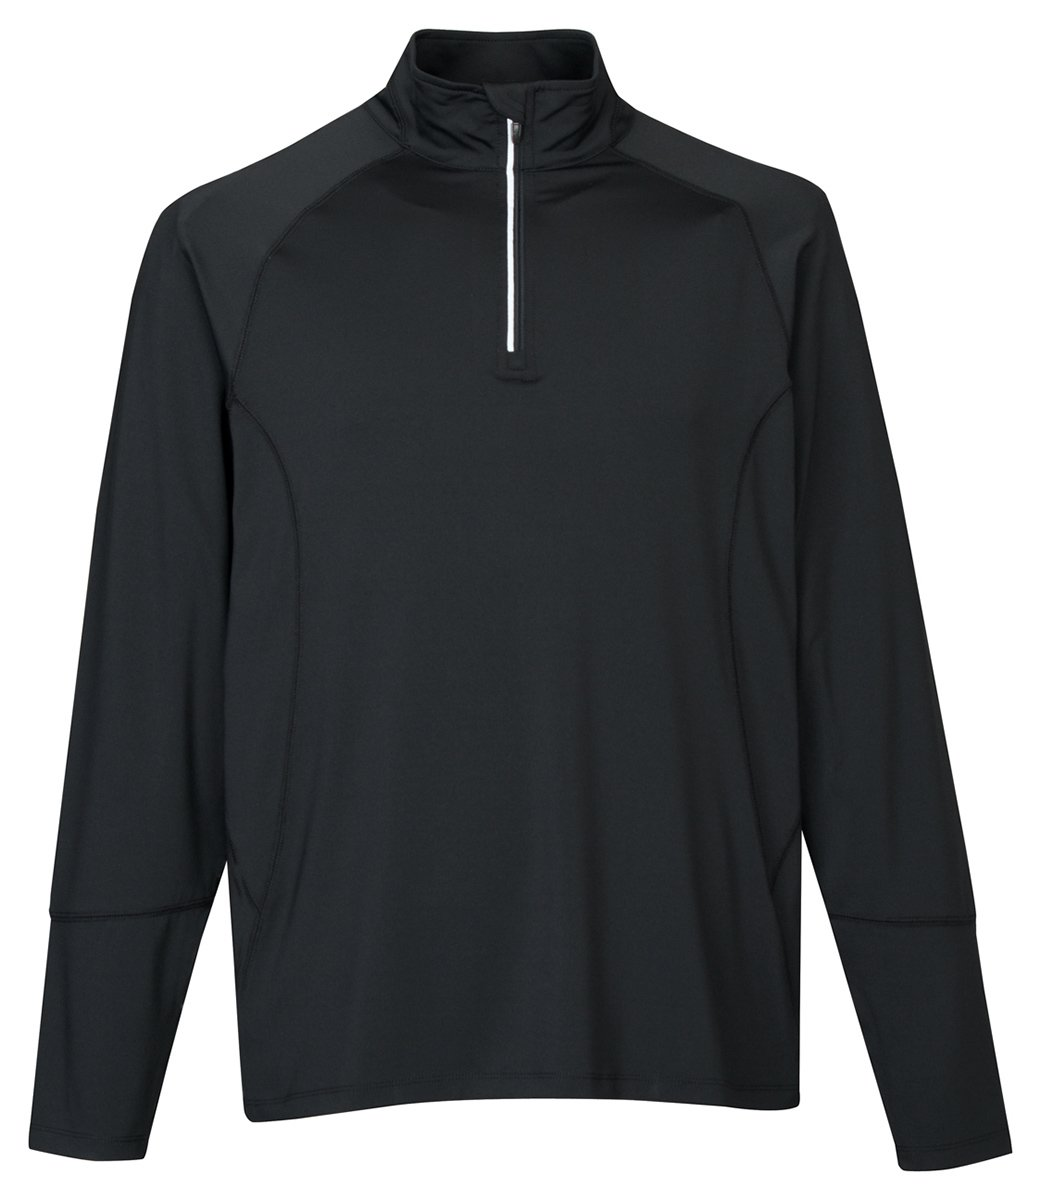 Tri-Mountain Men's Wicking Pullover Shirt